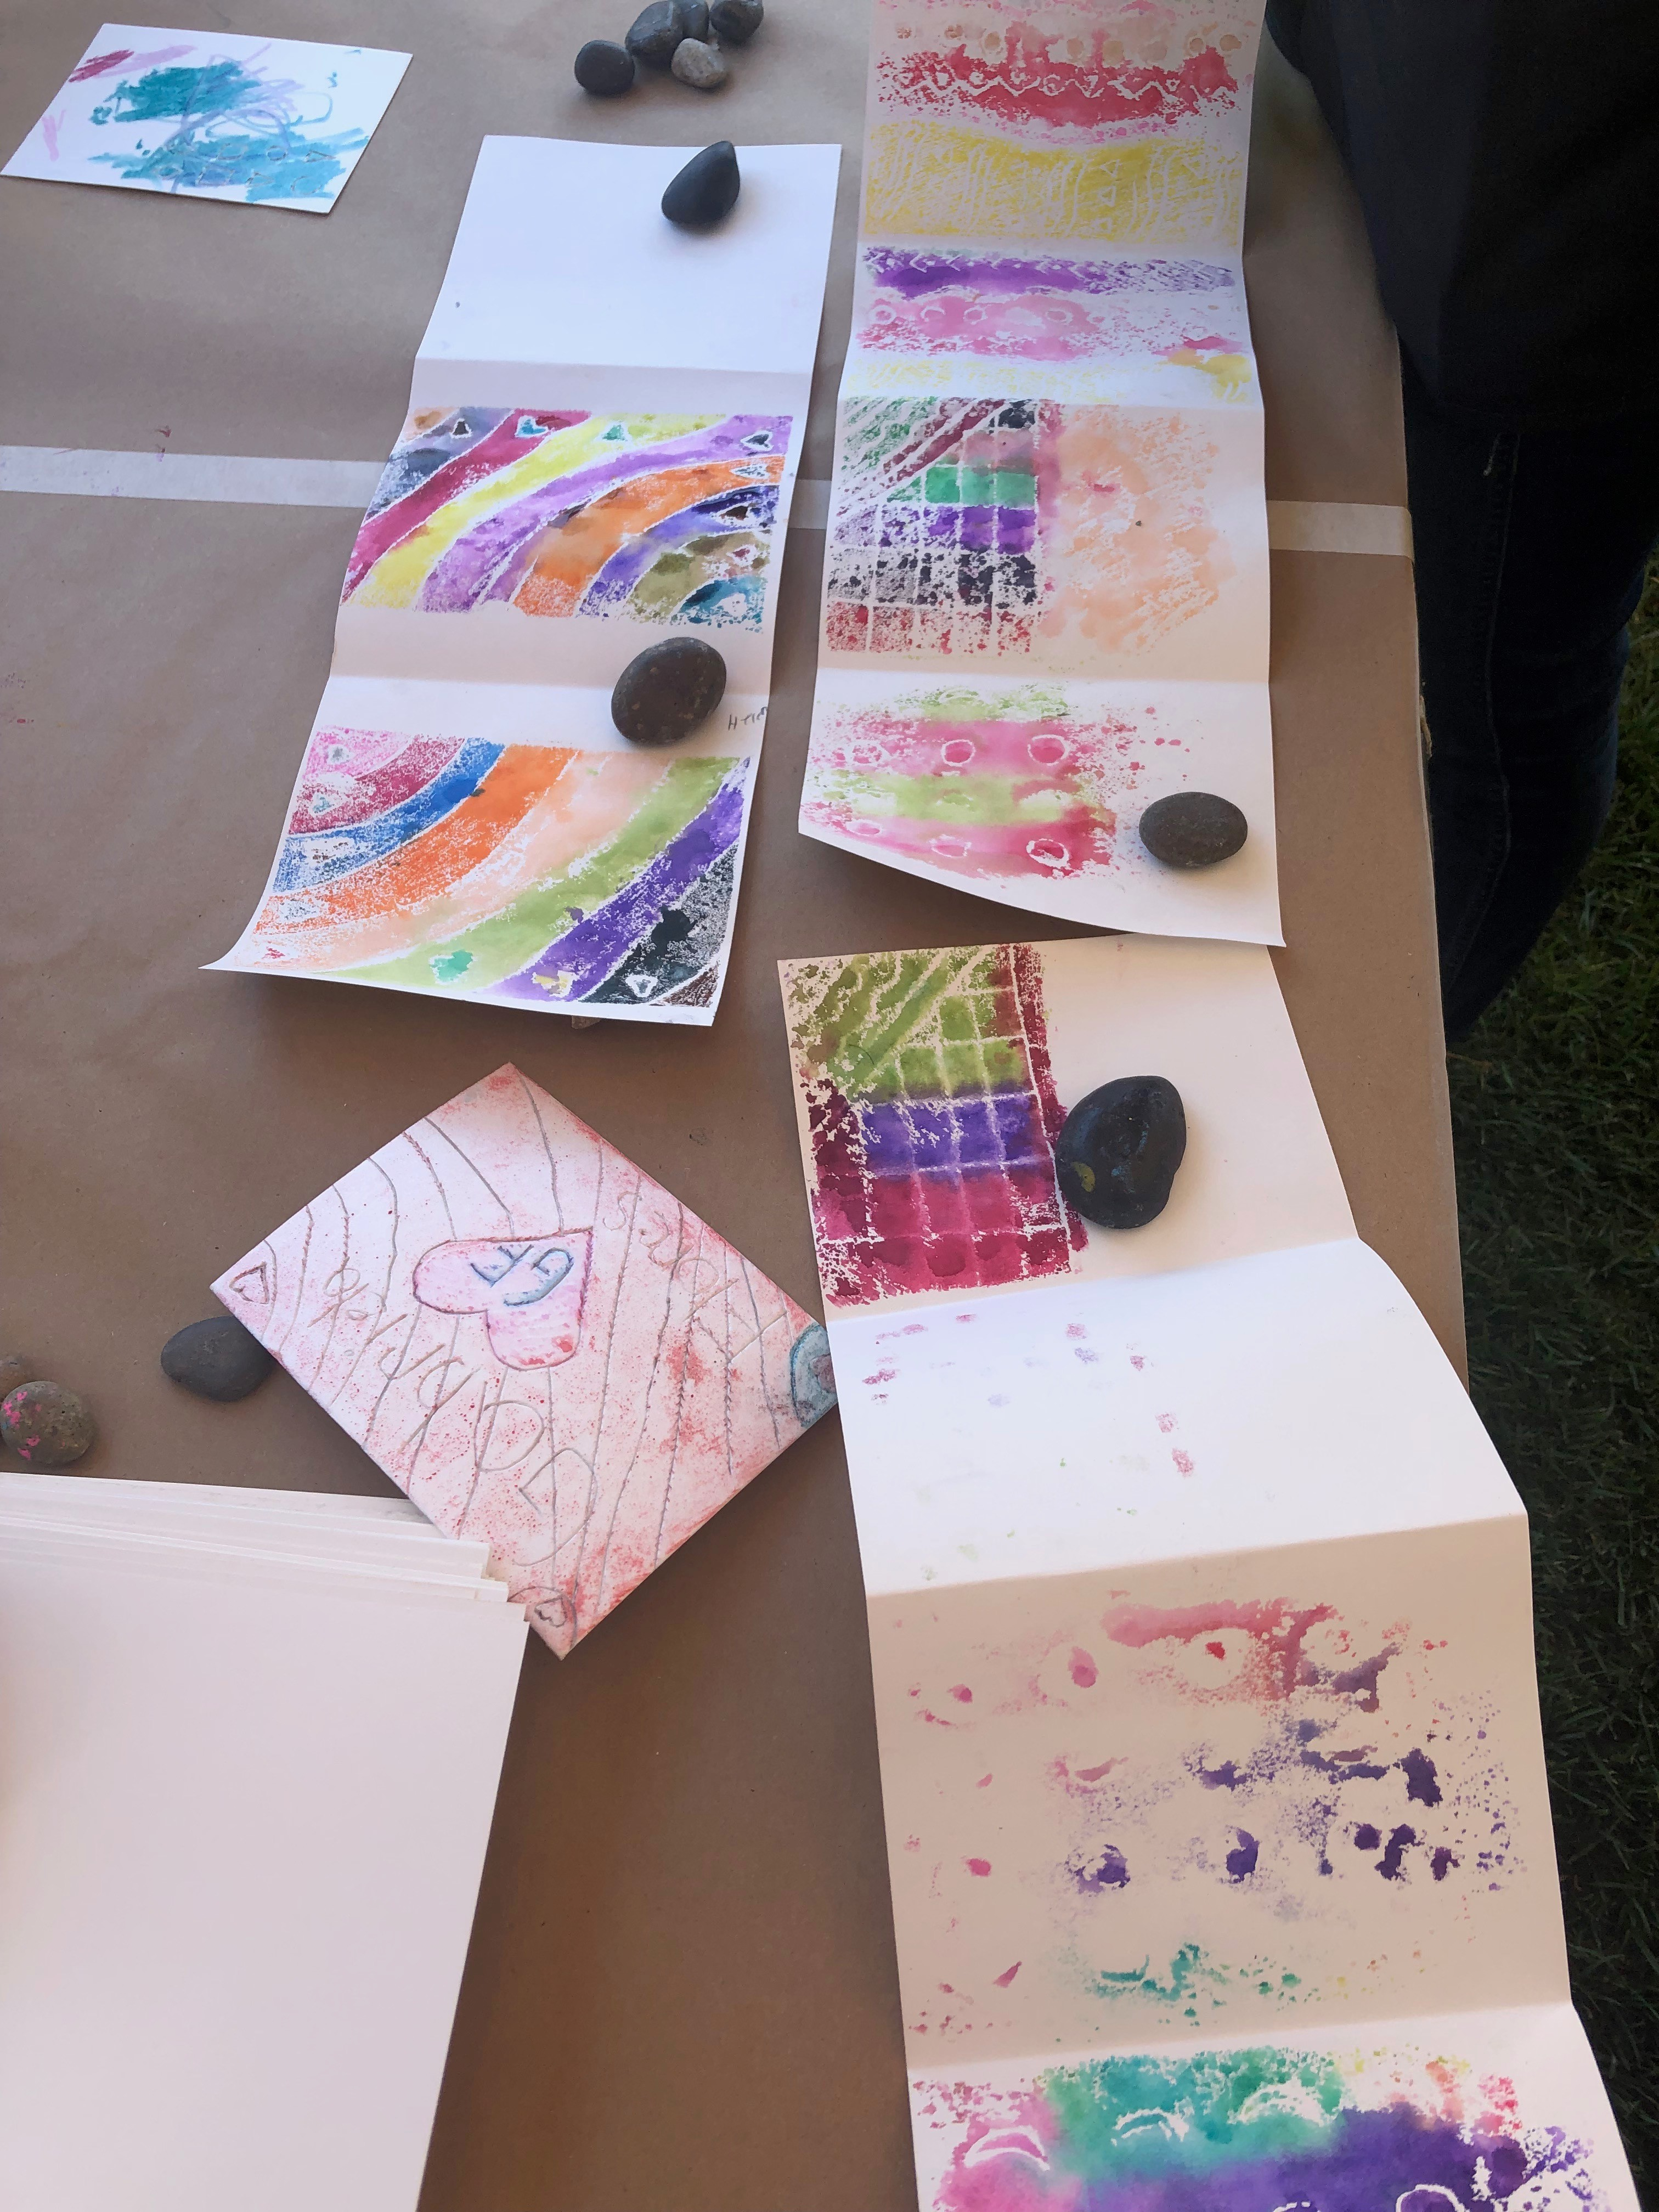 Families decorate art books at Andell Family Sundays